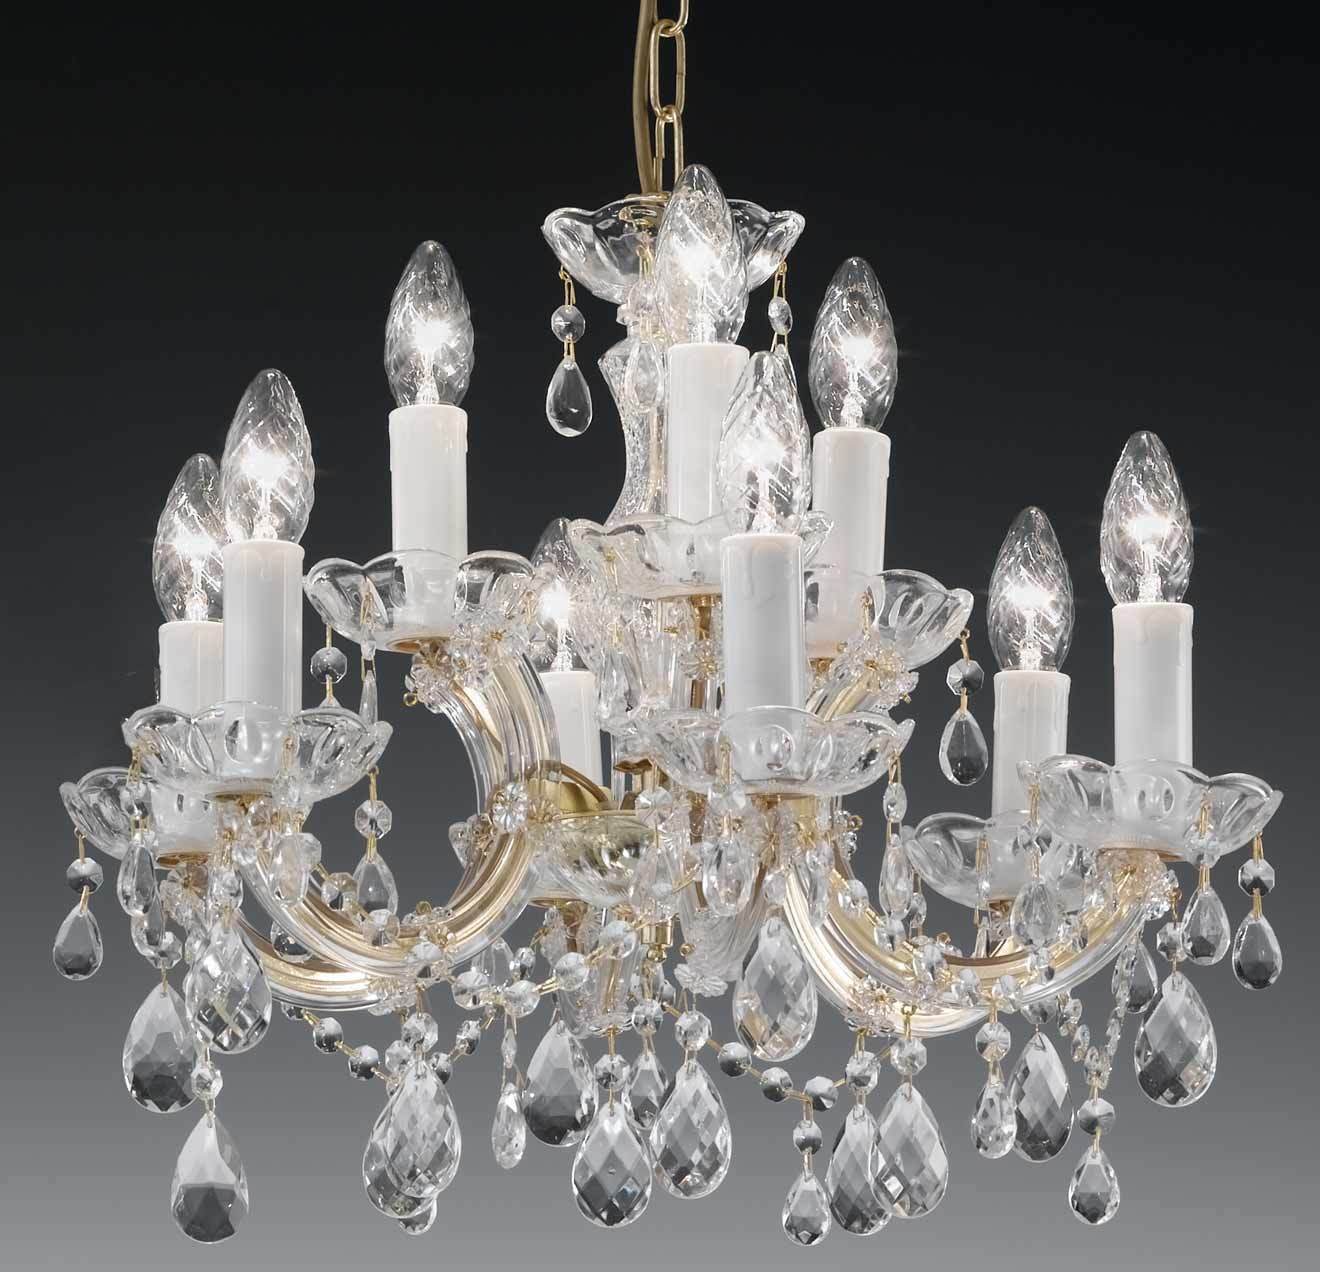 Popular Photo of Italian Chandeliers Style